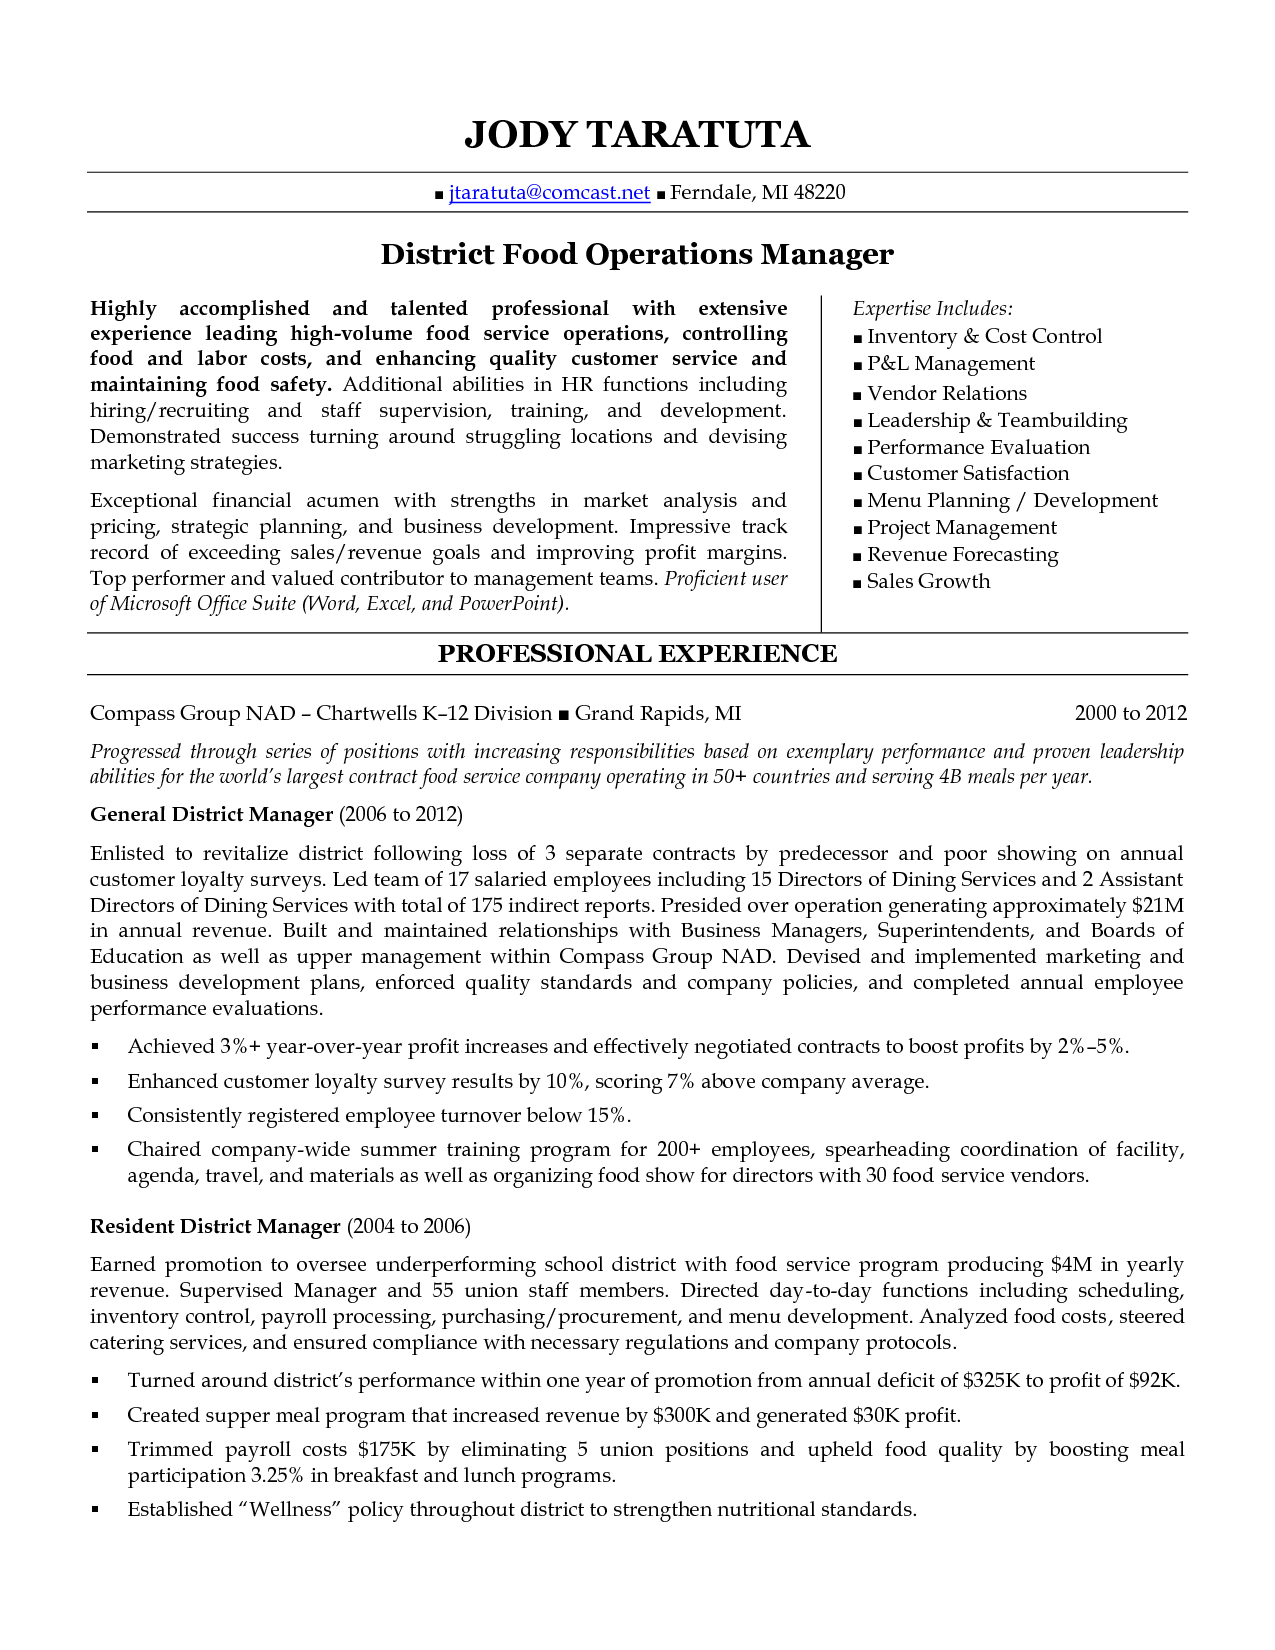 Manager Resume District Manager Resume  District Food Operations Manager In